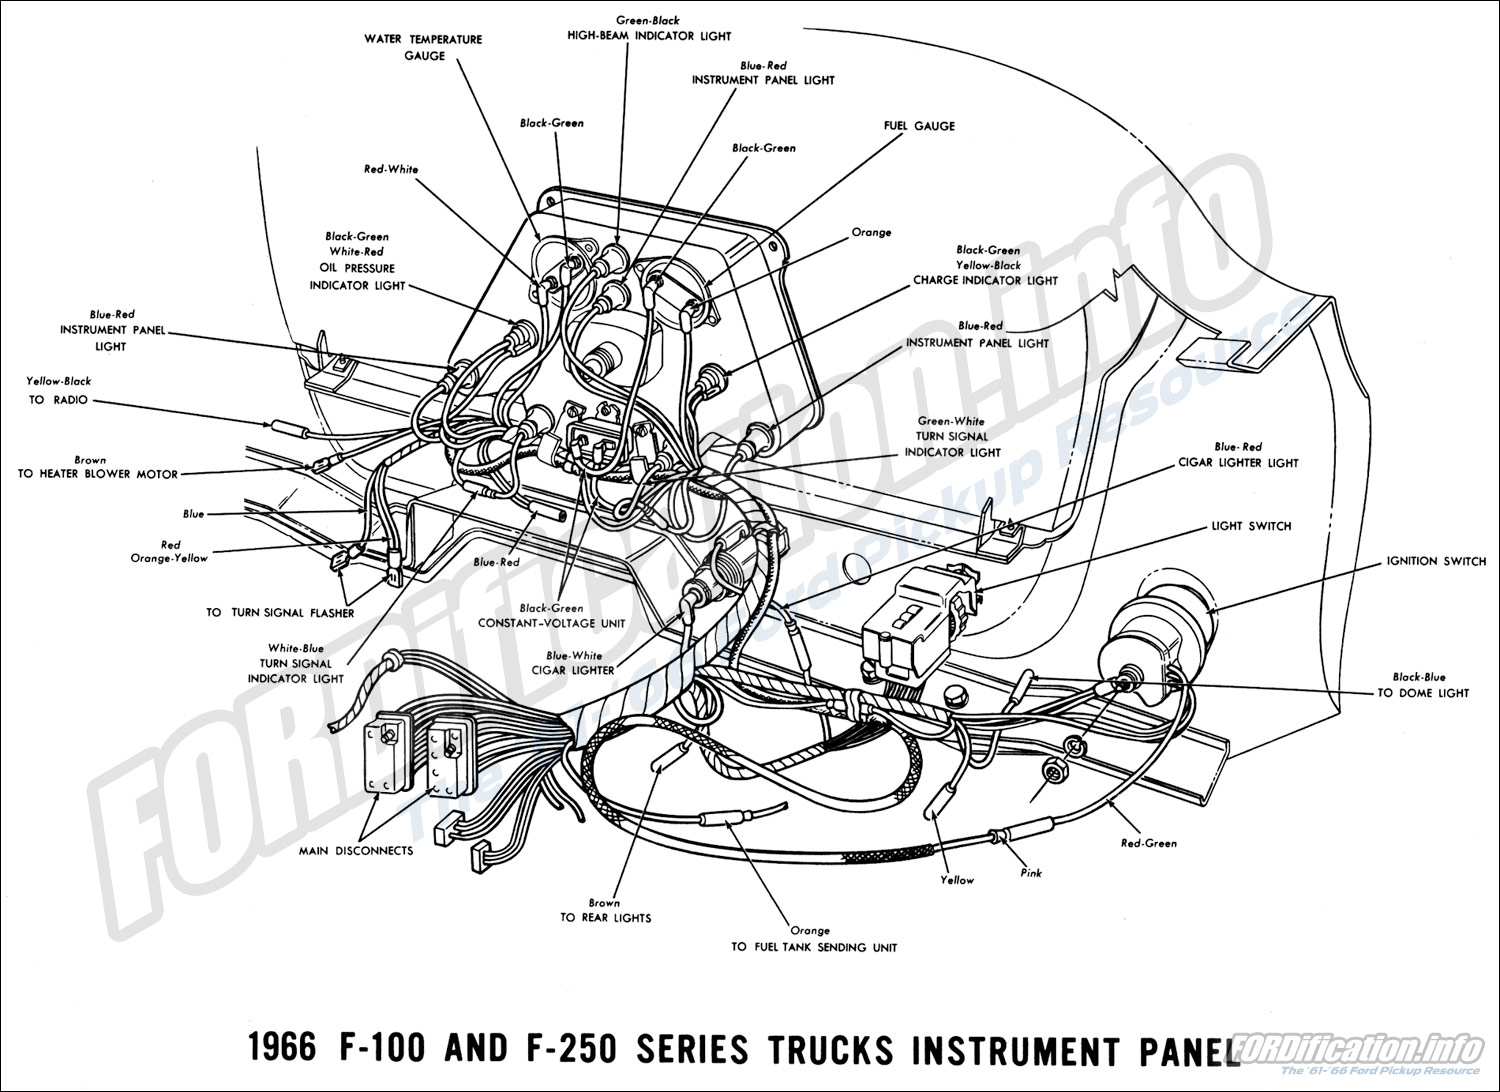 1966 Ford Pickup Wiring Diagram. 1966 Chrysler Wiring